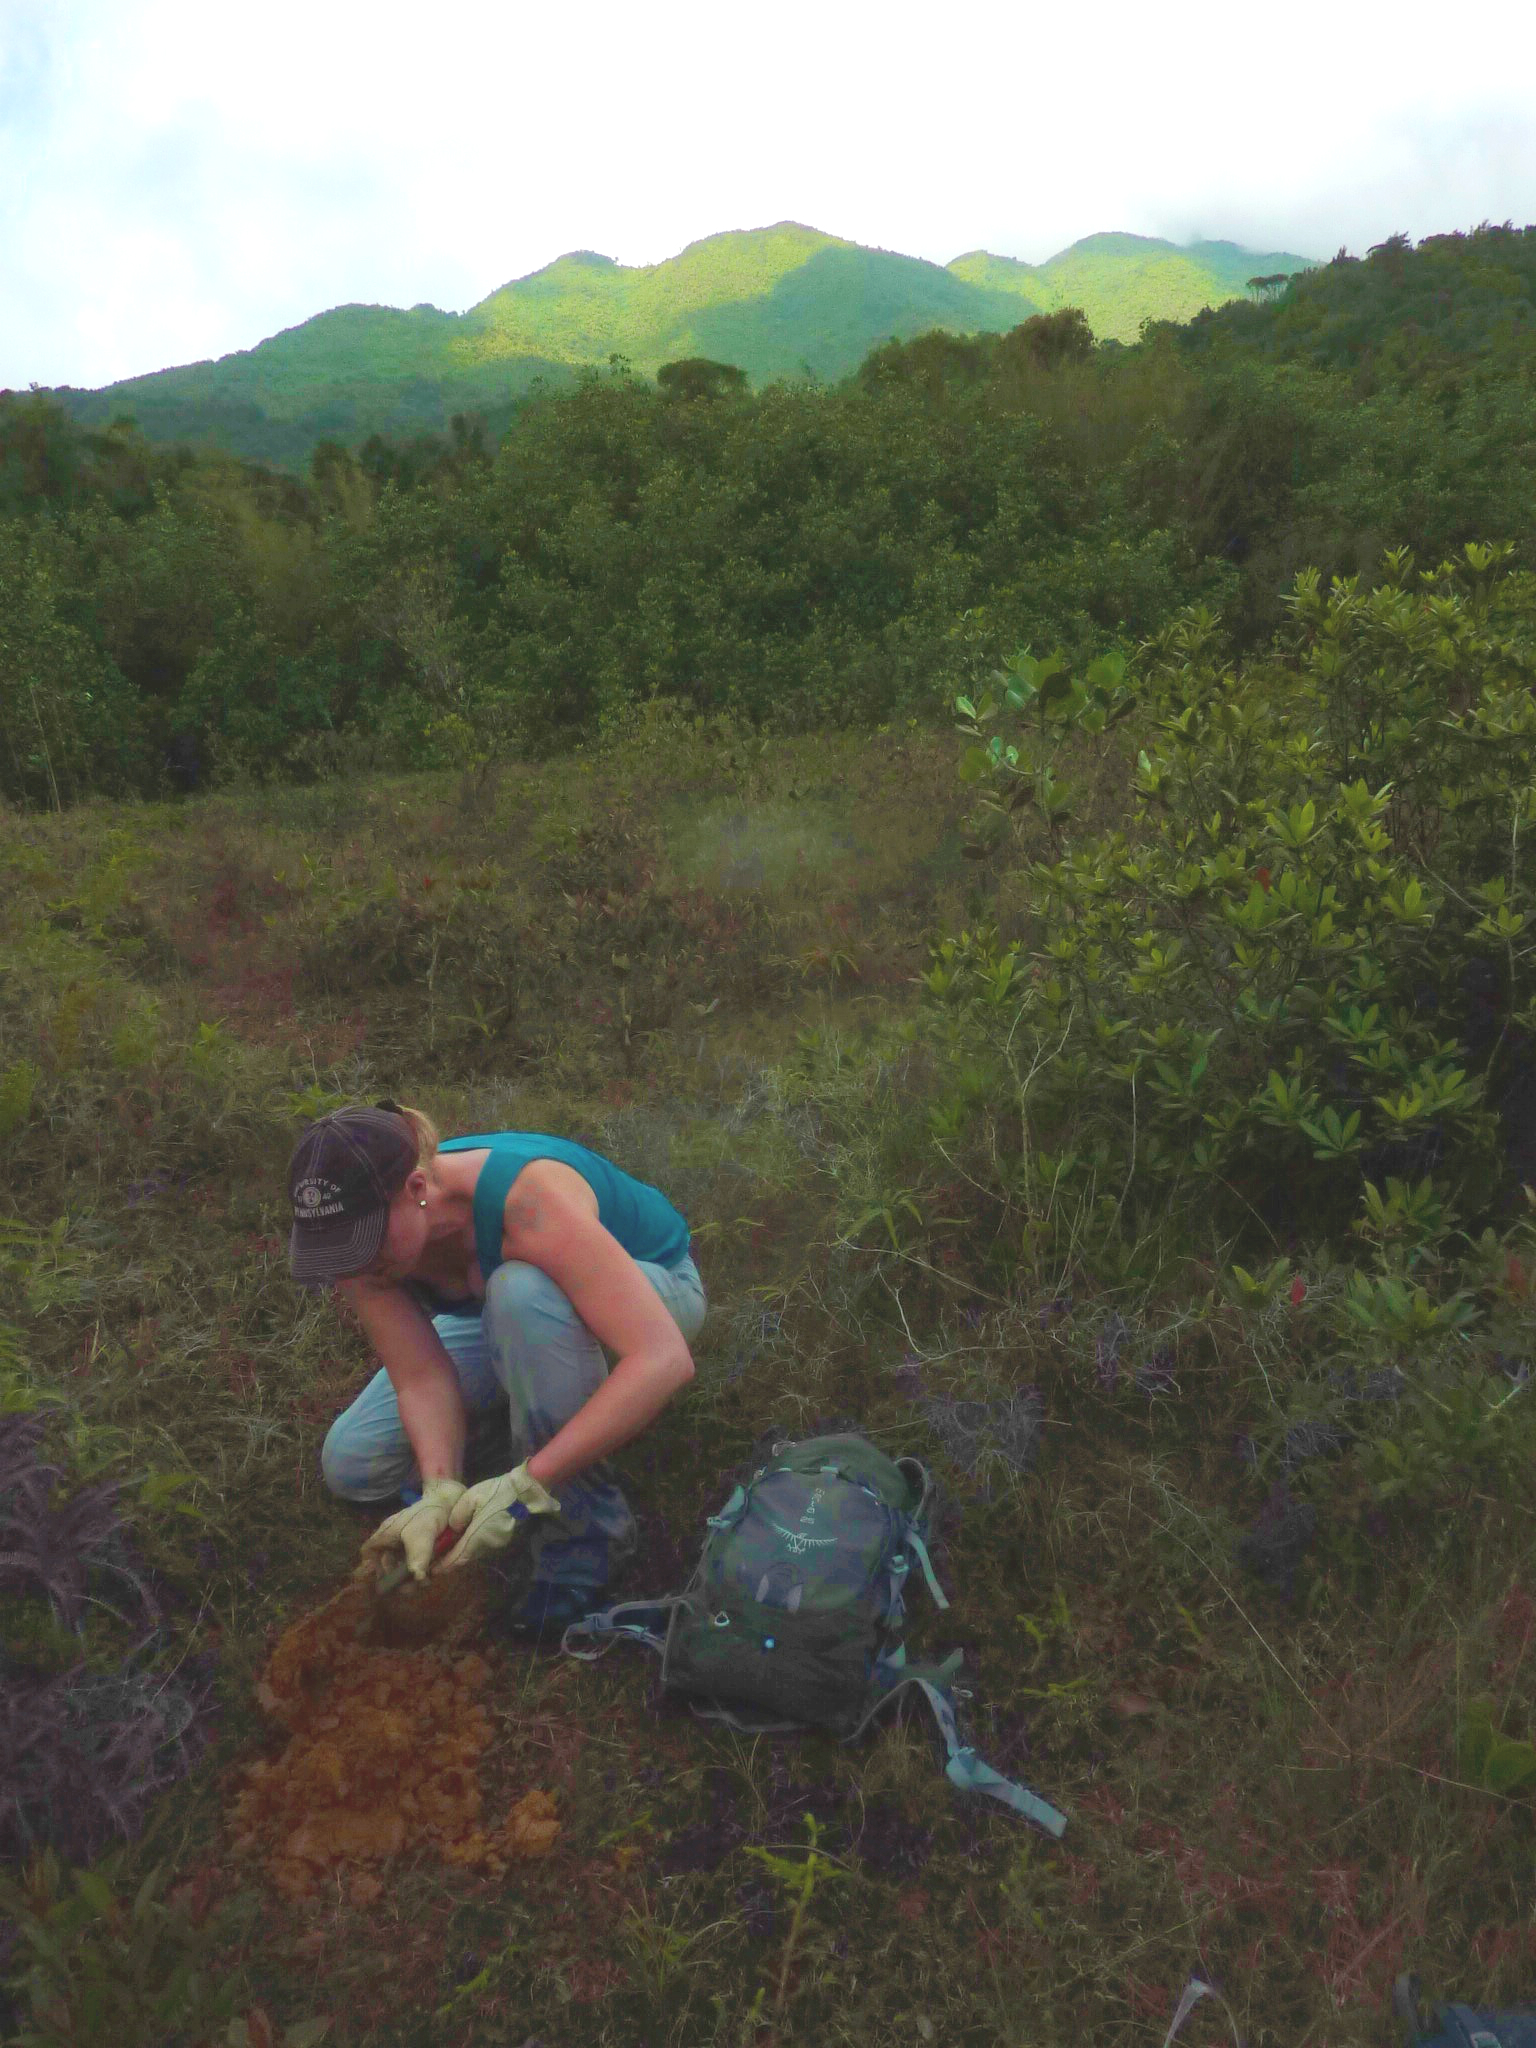 Willenbring collecting samples at El Yunque in Puerto Rico